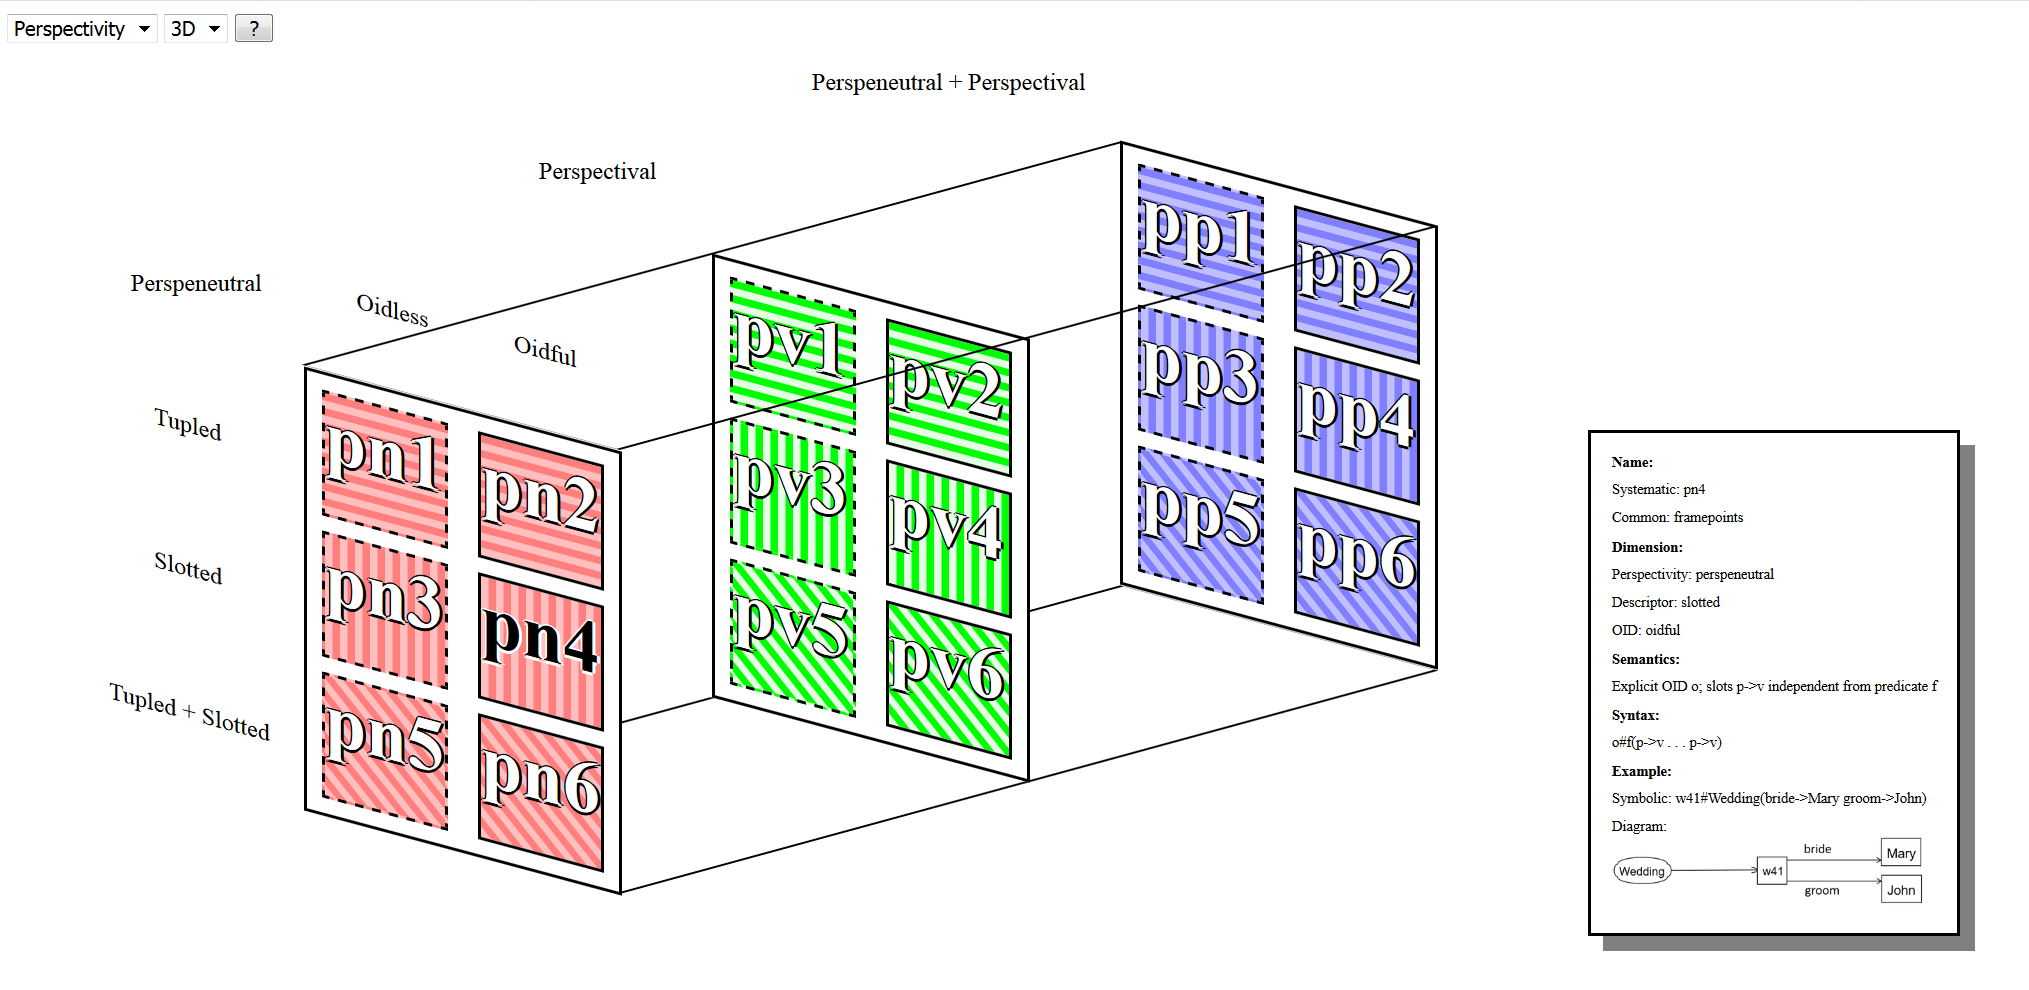 pn4: unit cube of framepoints